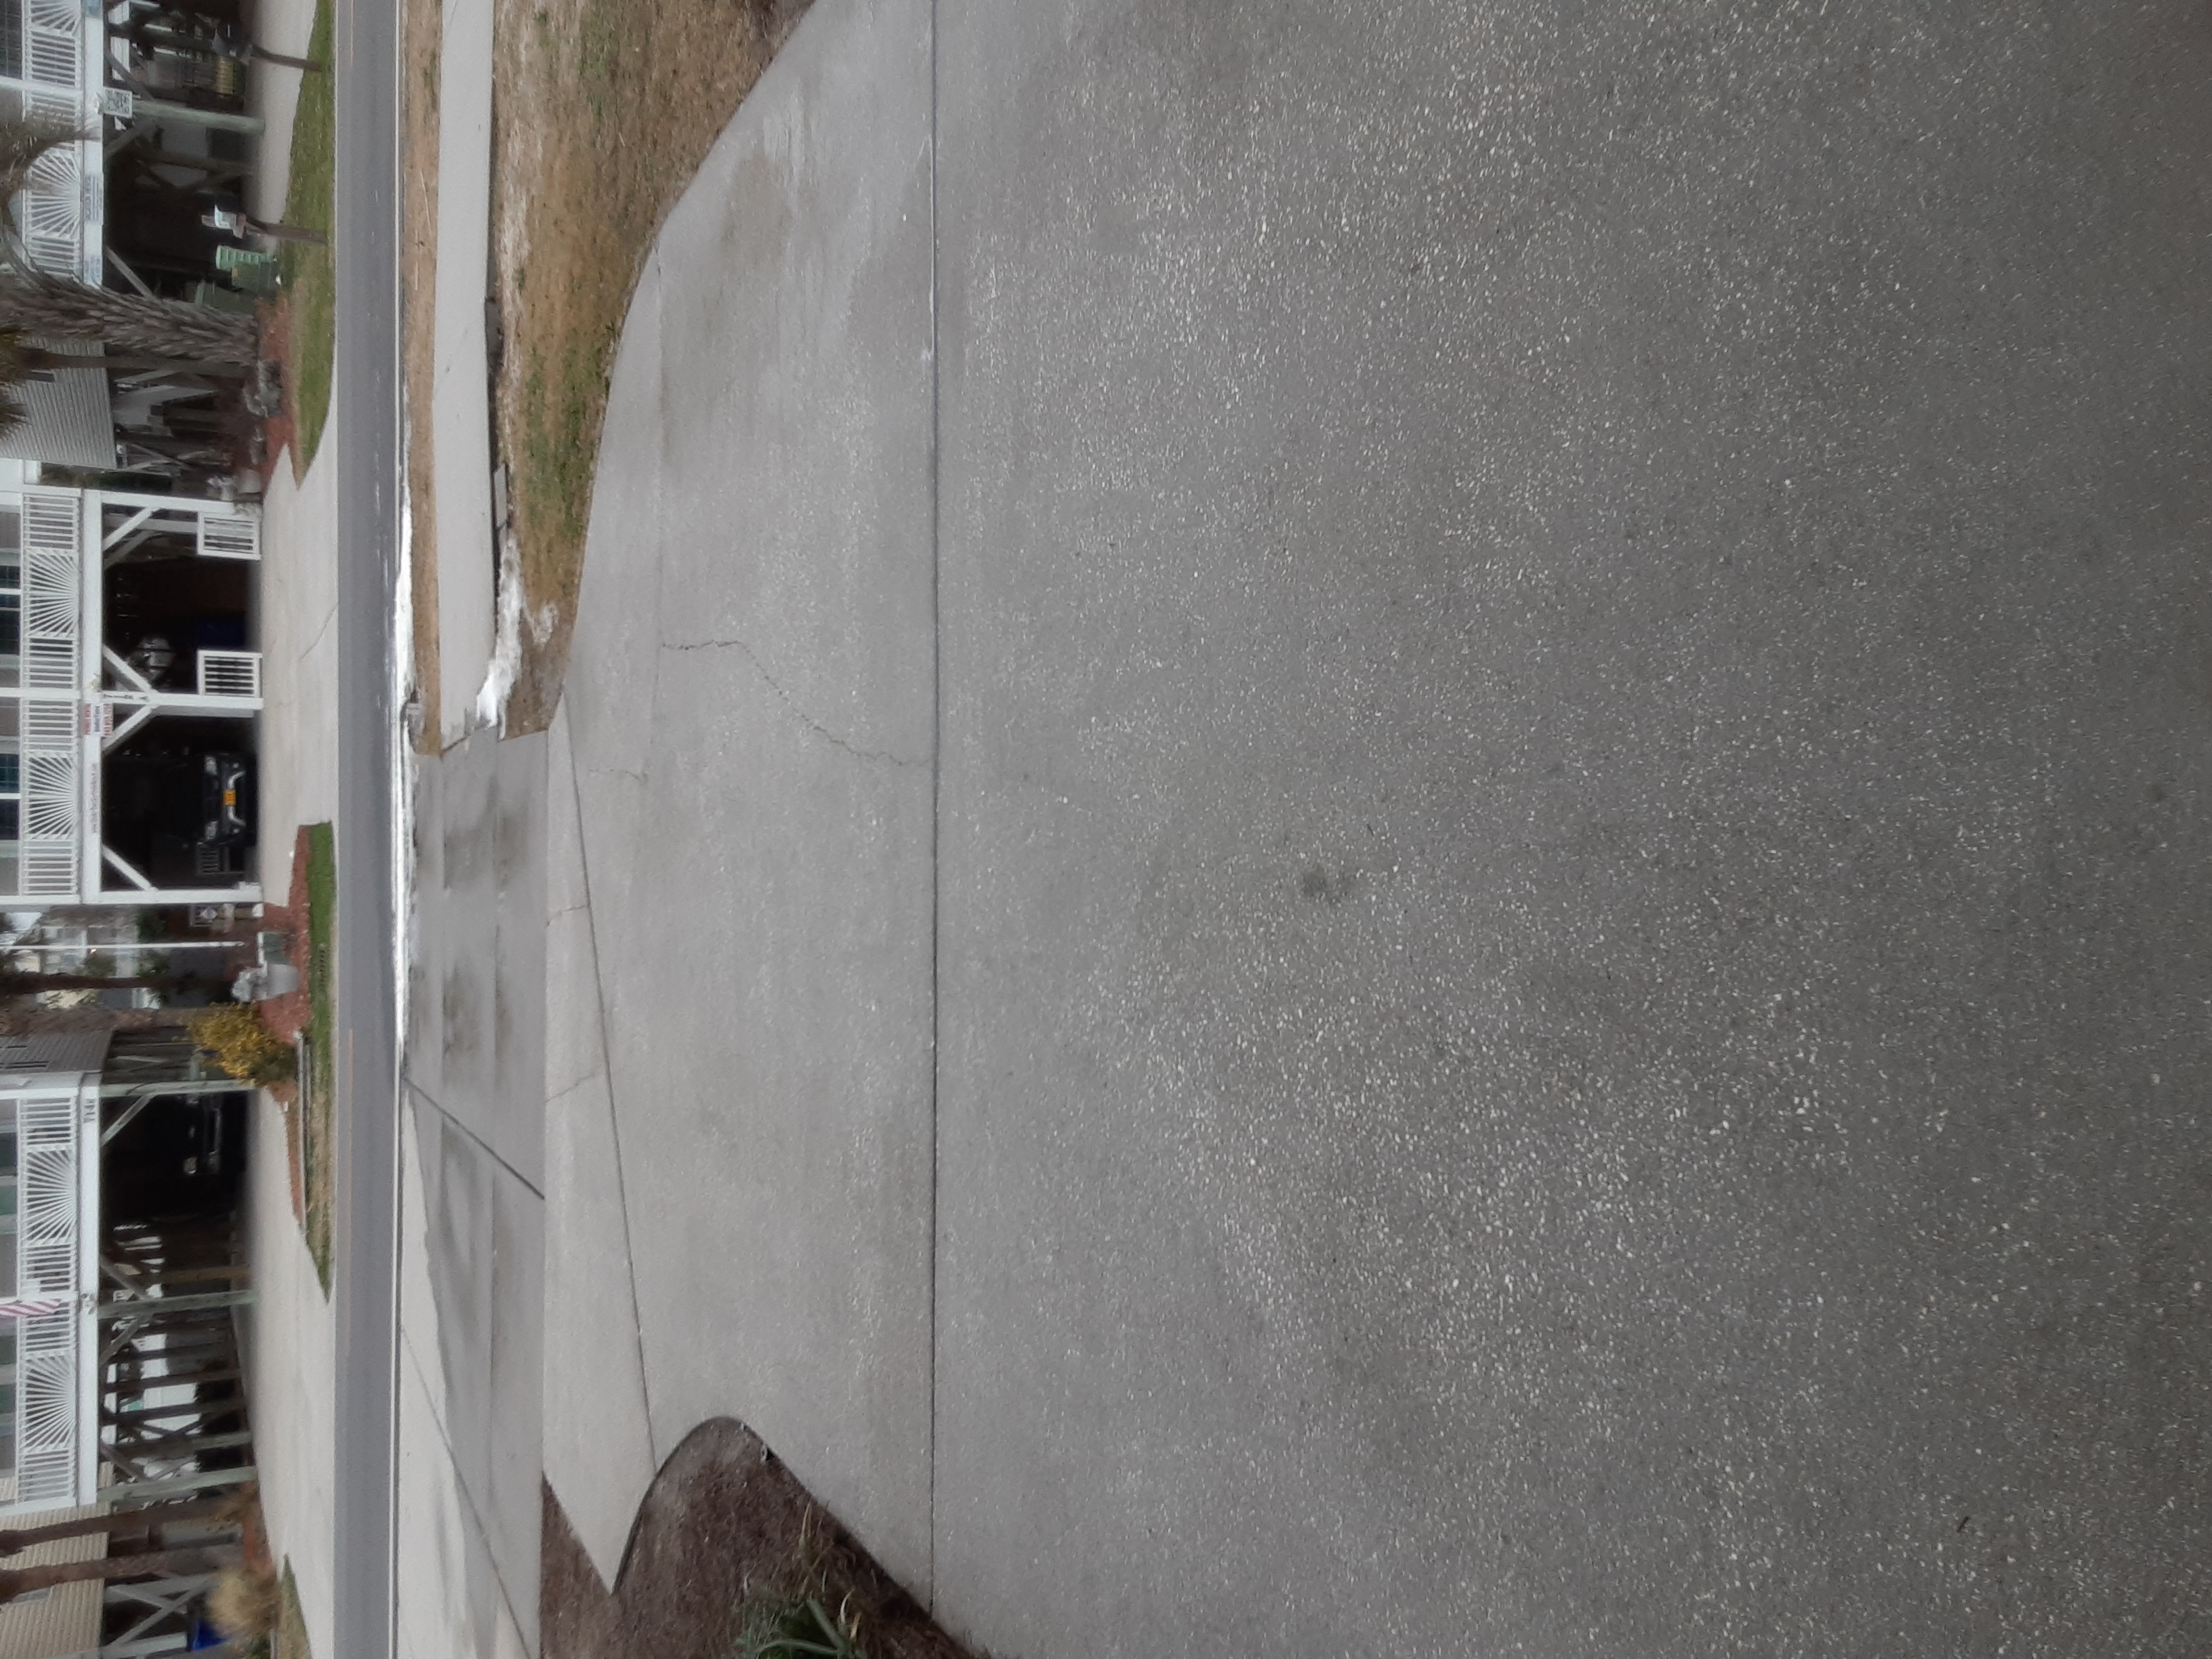 DRIVEWAY CLEANING AFTER